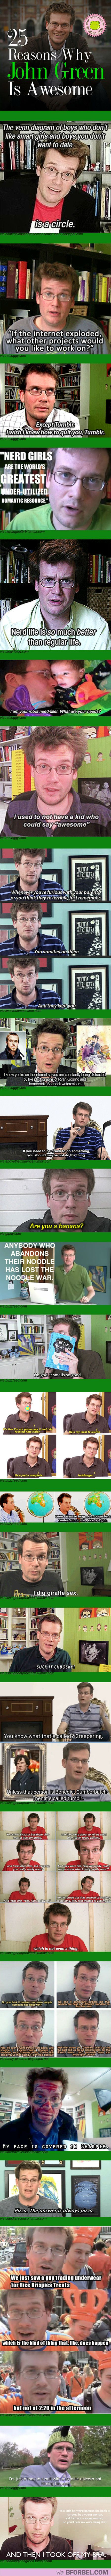 25+ Best Ideas About John Green Books On Pinterest  Books By John Green, John  Green Movies And Paper Towns